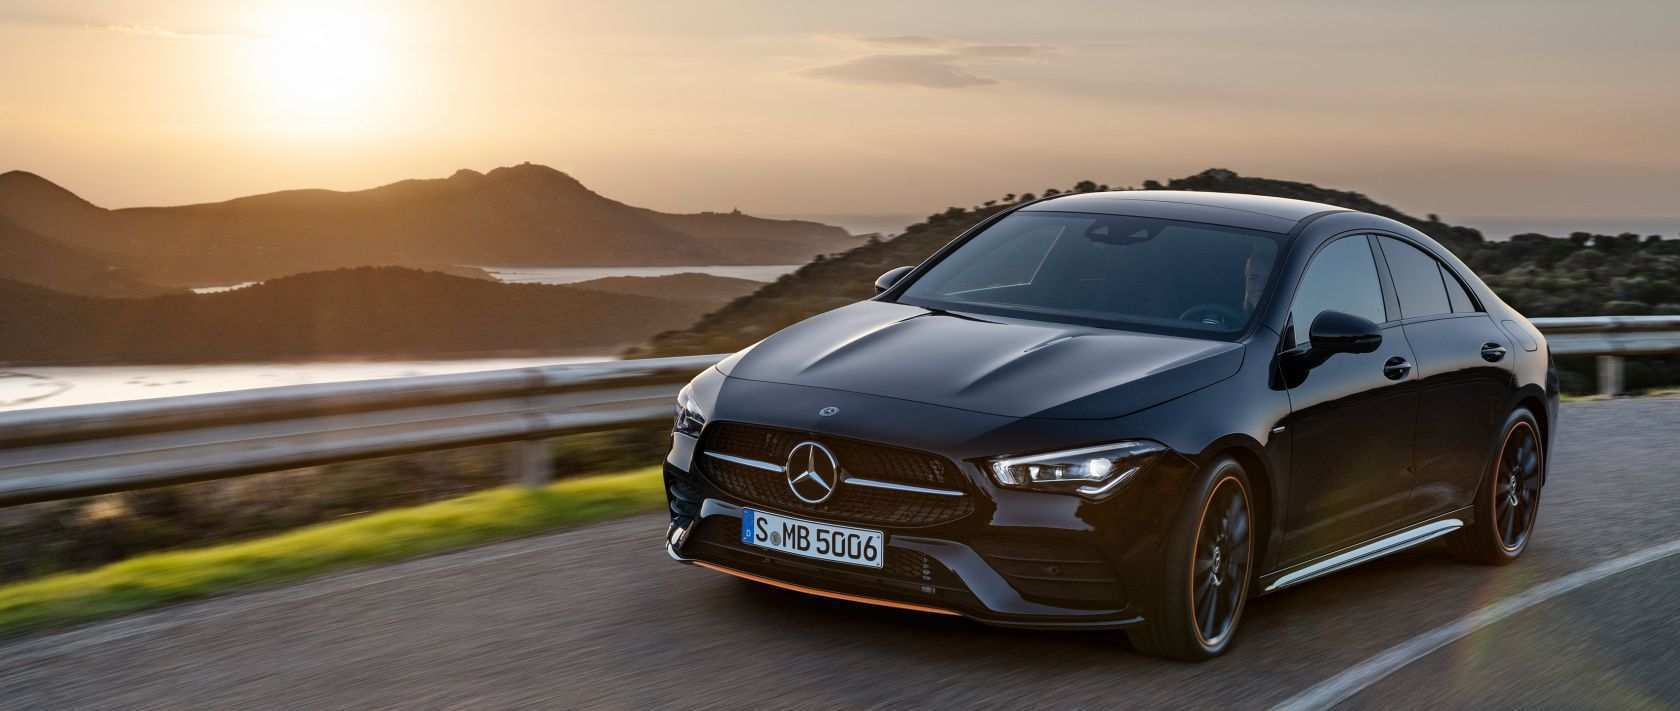 93 A Pictures Of 2019 Mercedes Benz Rumors